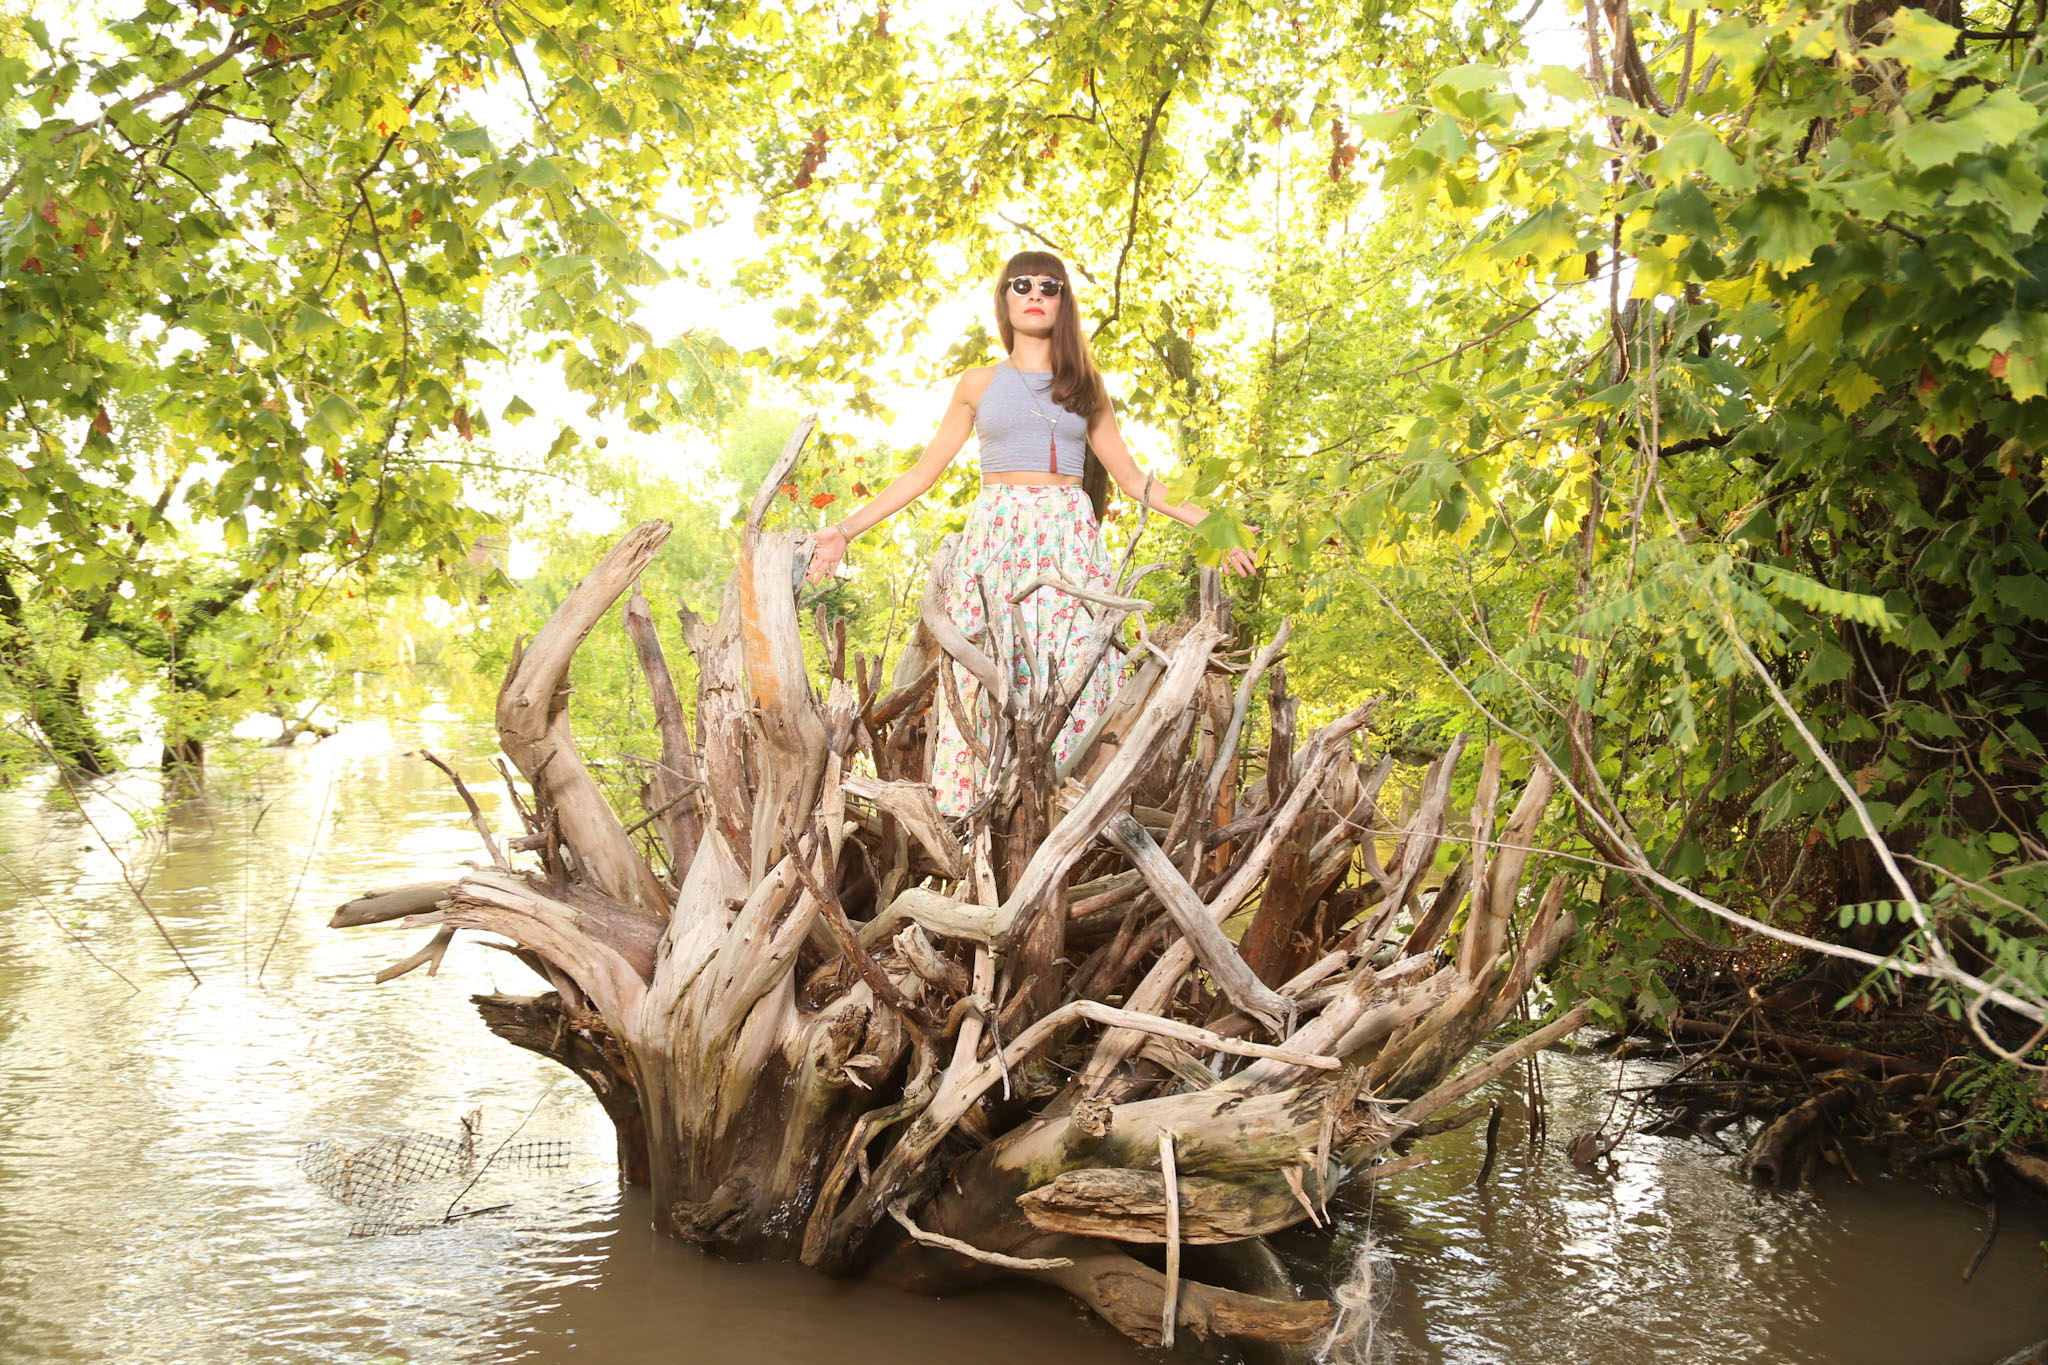 Amanda Helm rides ashore a Mississippi River tree. ©Zack Smith 2012